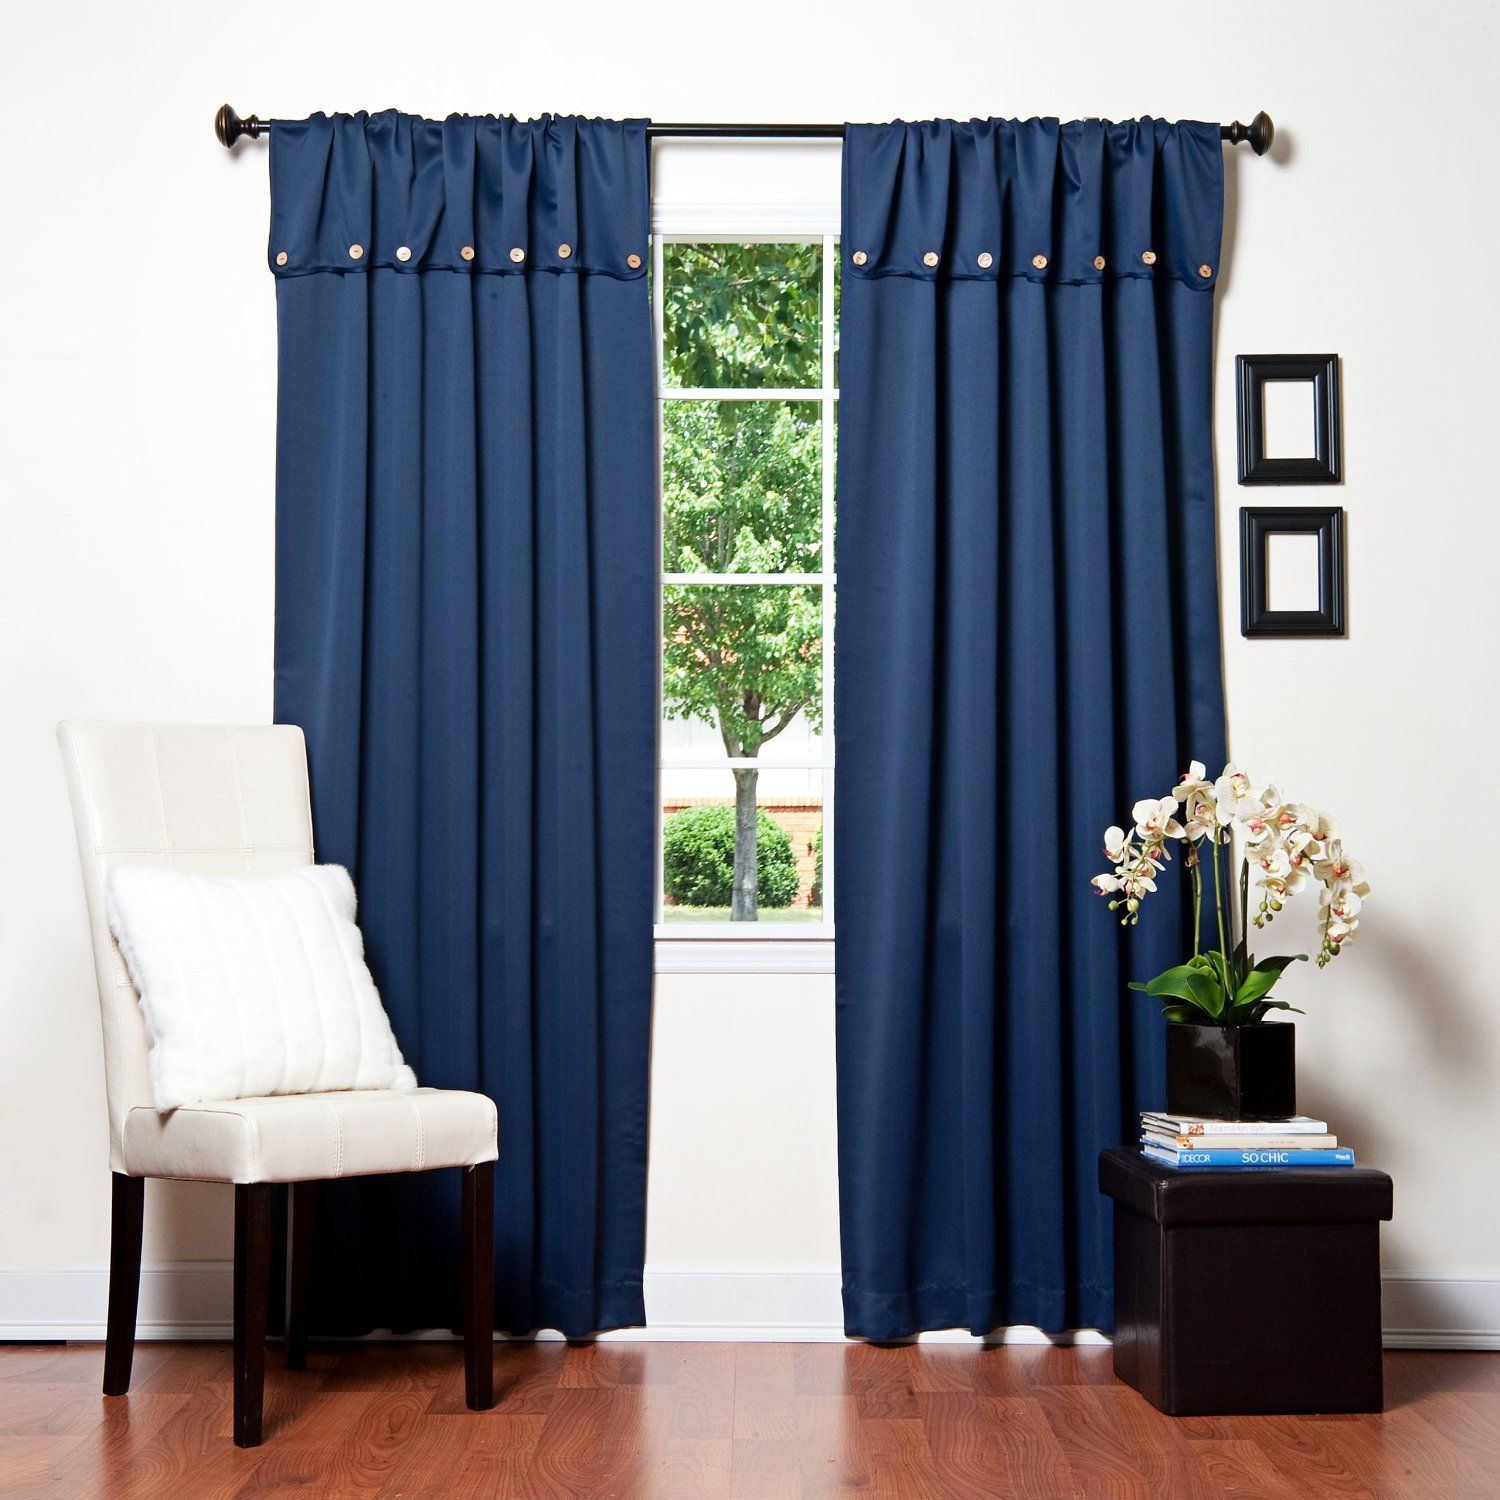 Baby Blue Blackout Curtains Pin By Lulumcleman On My House Ideas Curtains